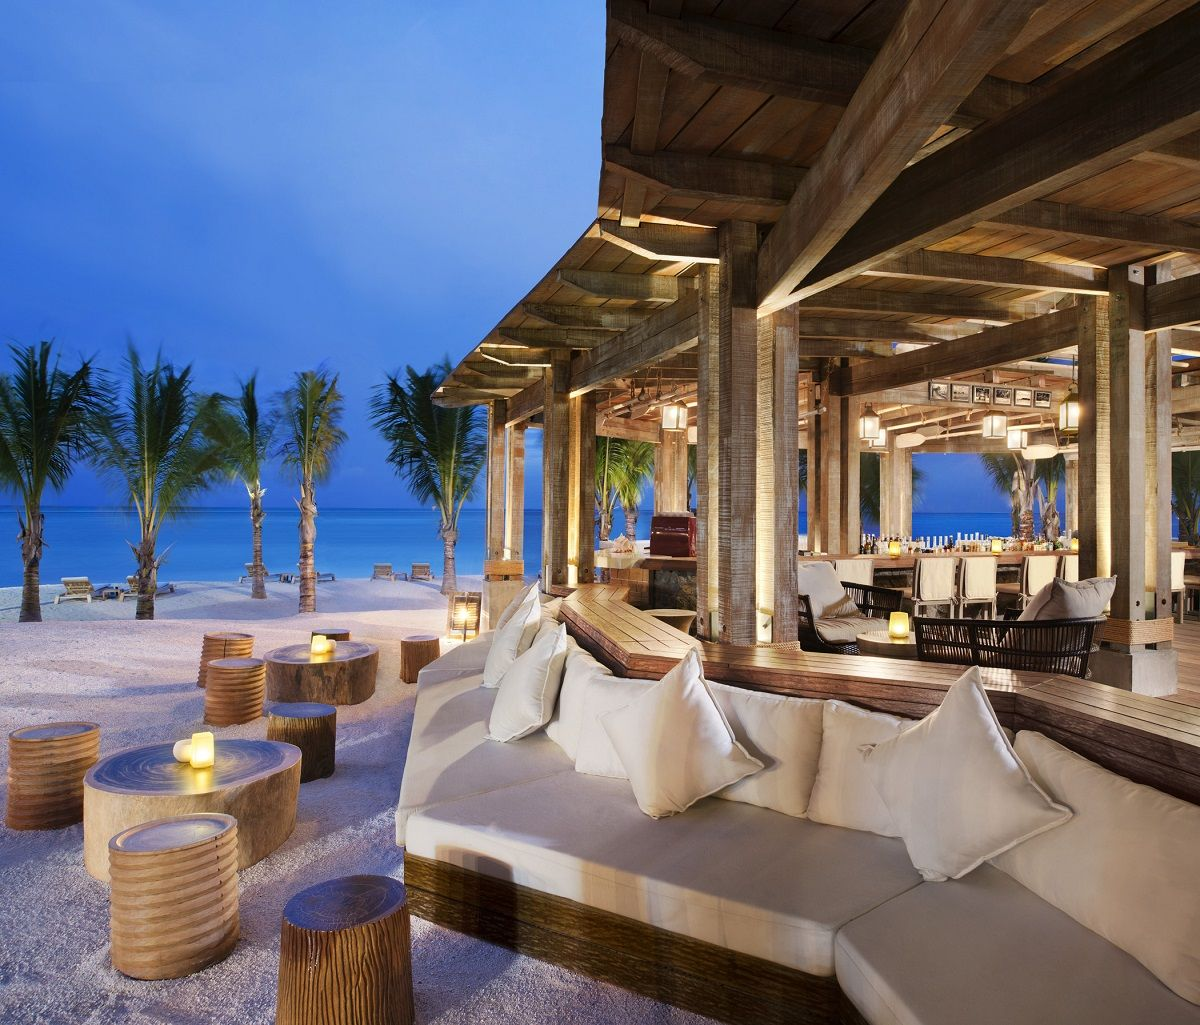 Maldives Luxury Homes: 6 Glorious Hotel Beach Bars For Drinking In Style By The